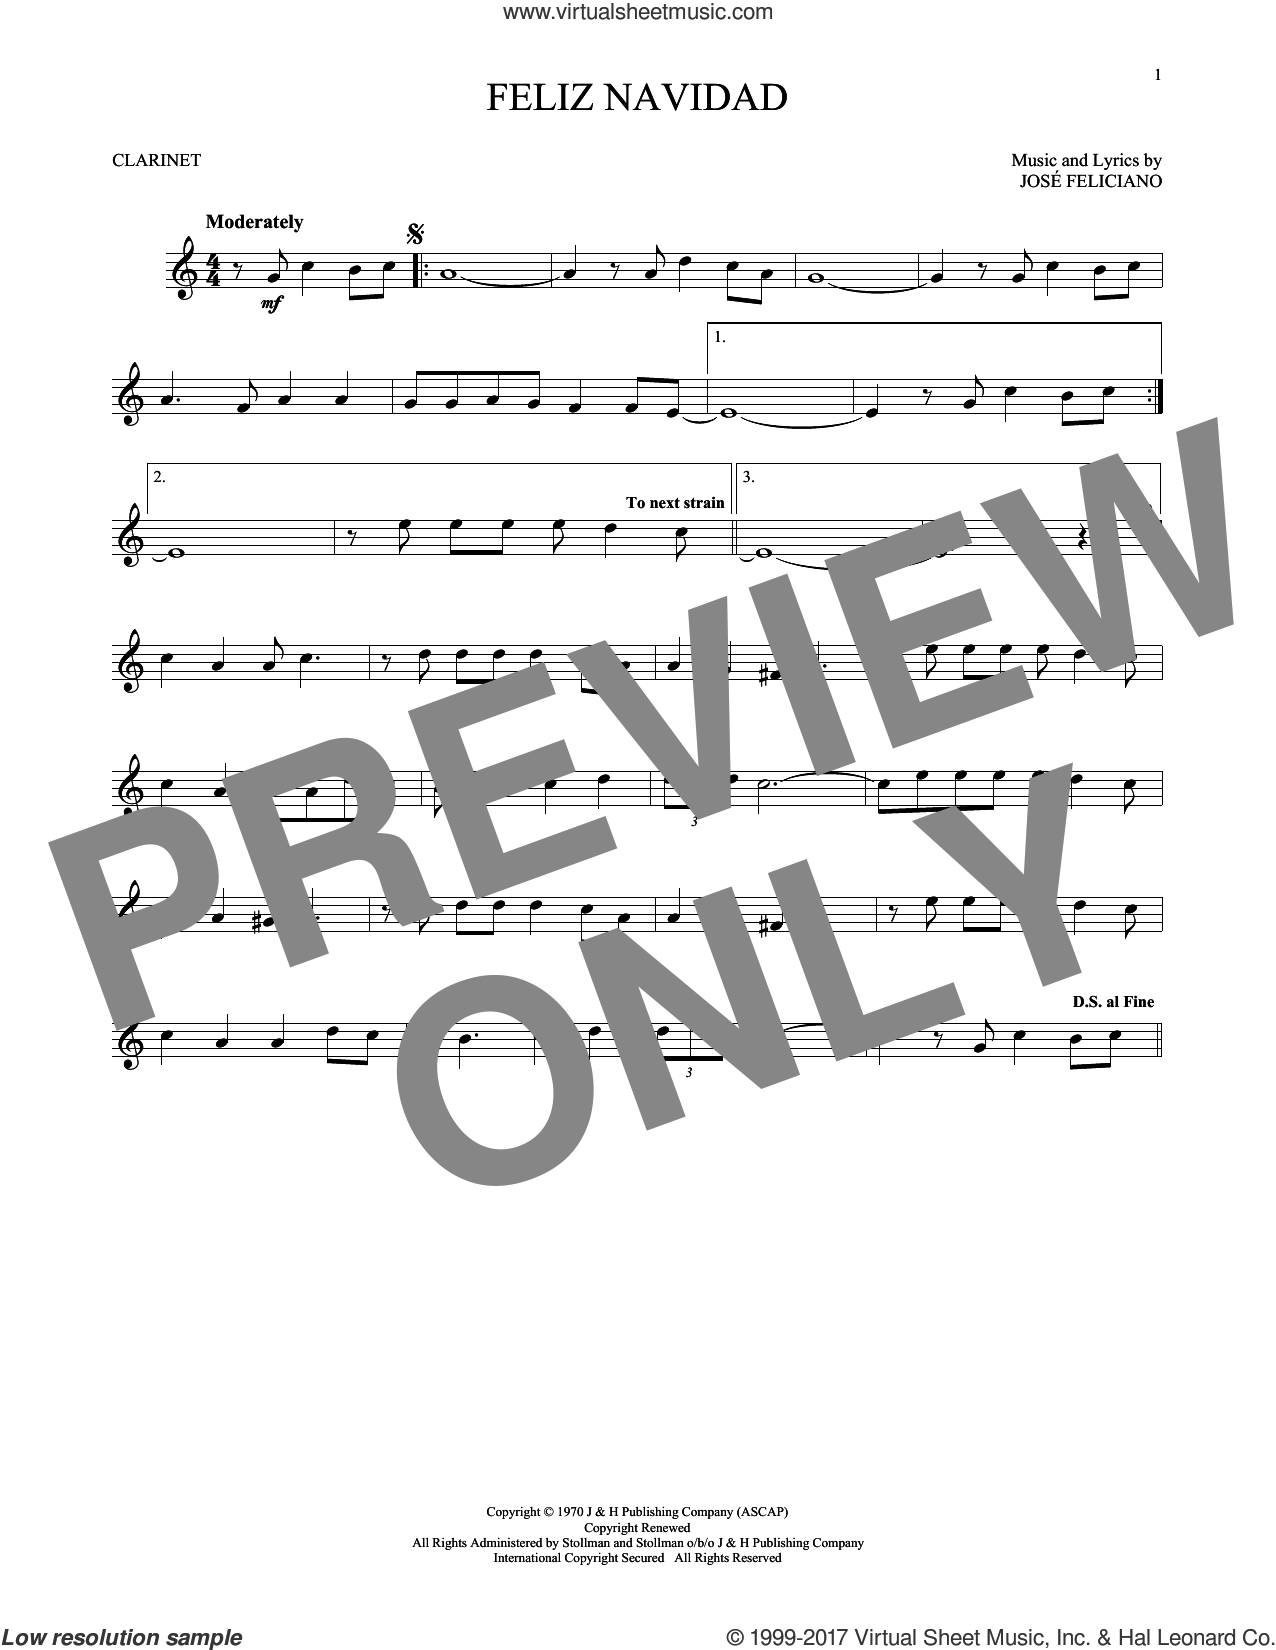 Feliz Navidad sheet music for clarinet solo by Jose Feliciano, intermediate skill level